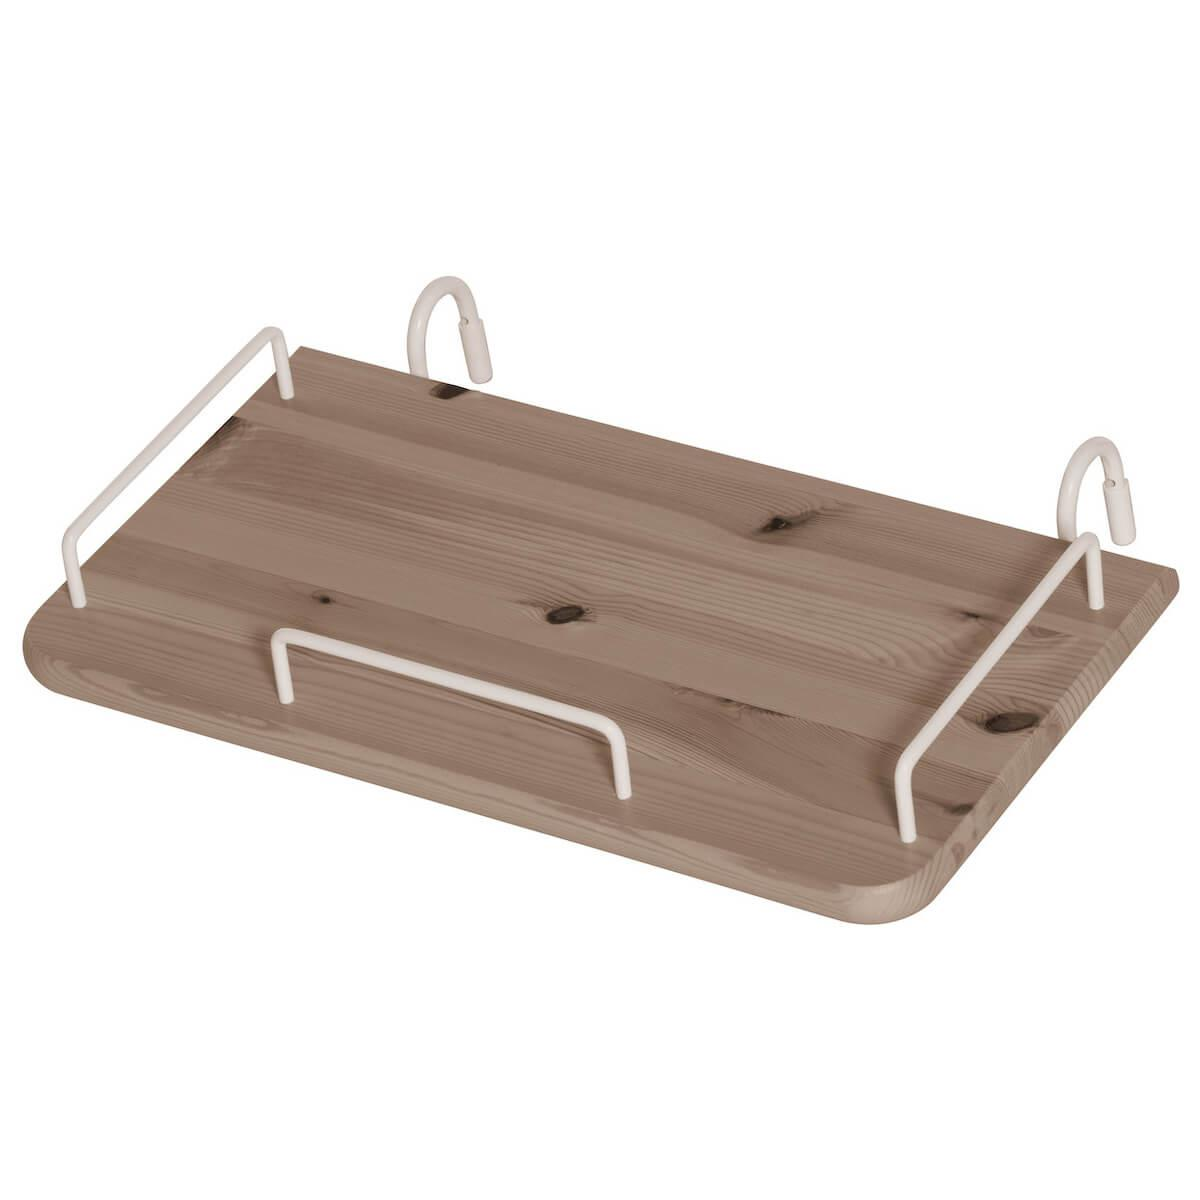 Table de chevet Flexa terra